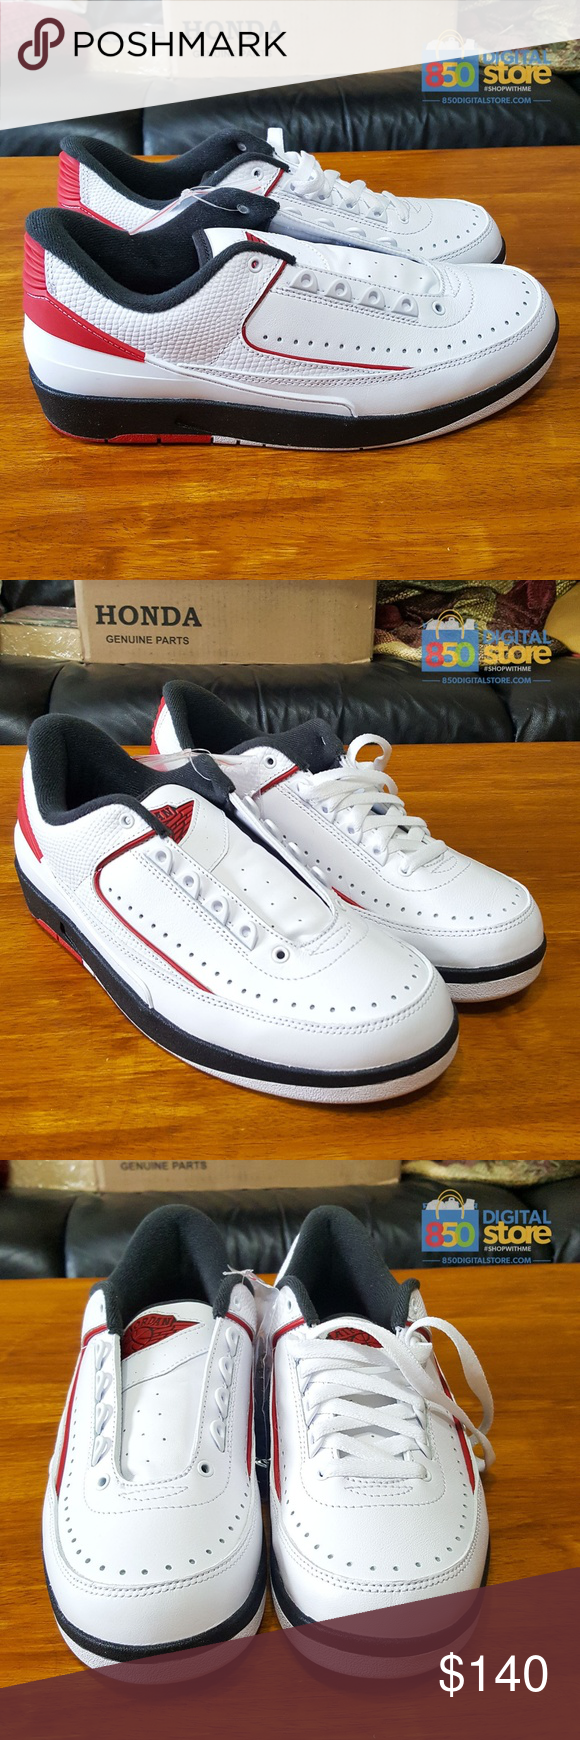 cheap for discount a0906 6cefd Nike Air Jordan Retro 2 II Low White Red Black NEW Air Jordan 2 II Retro